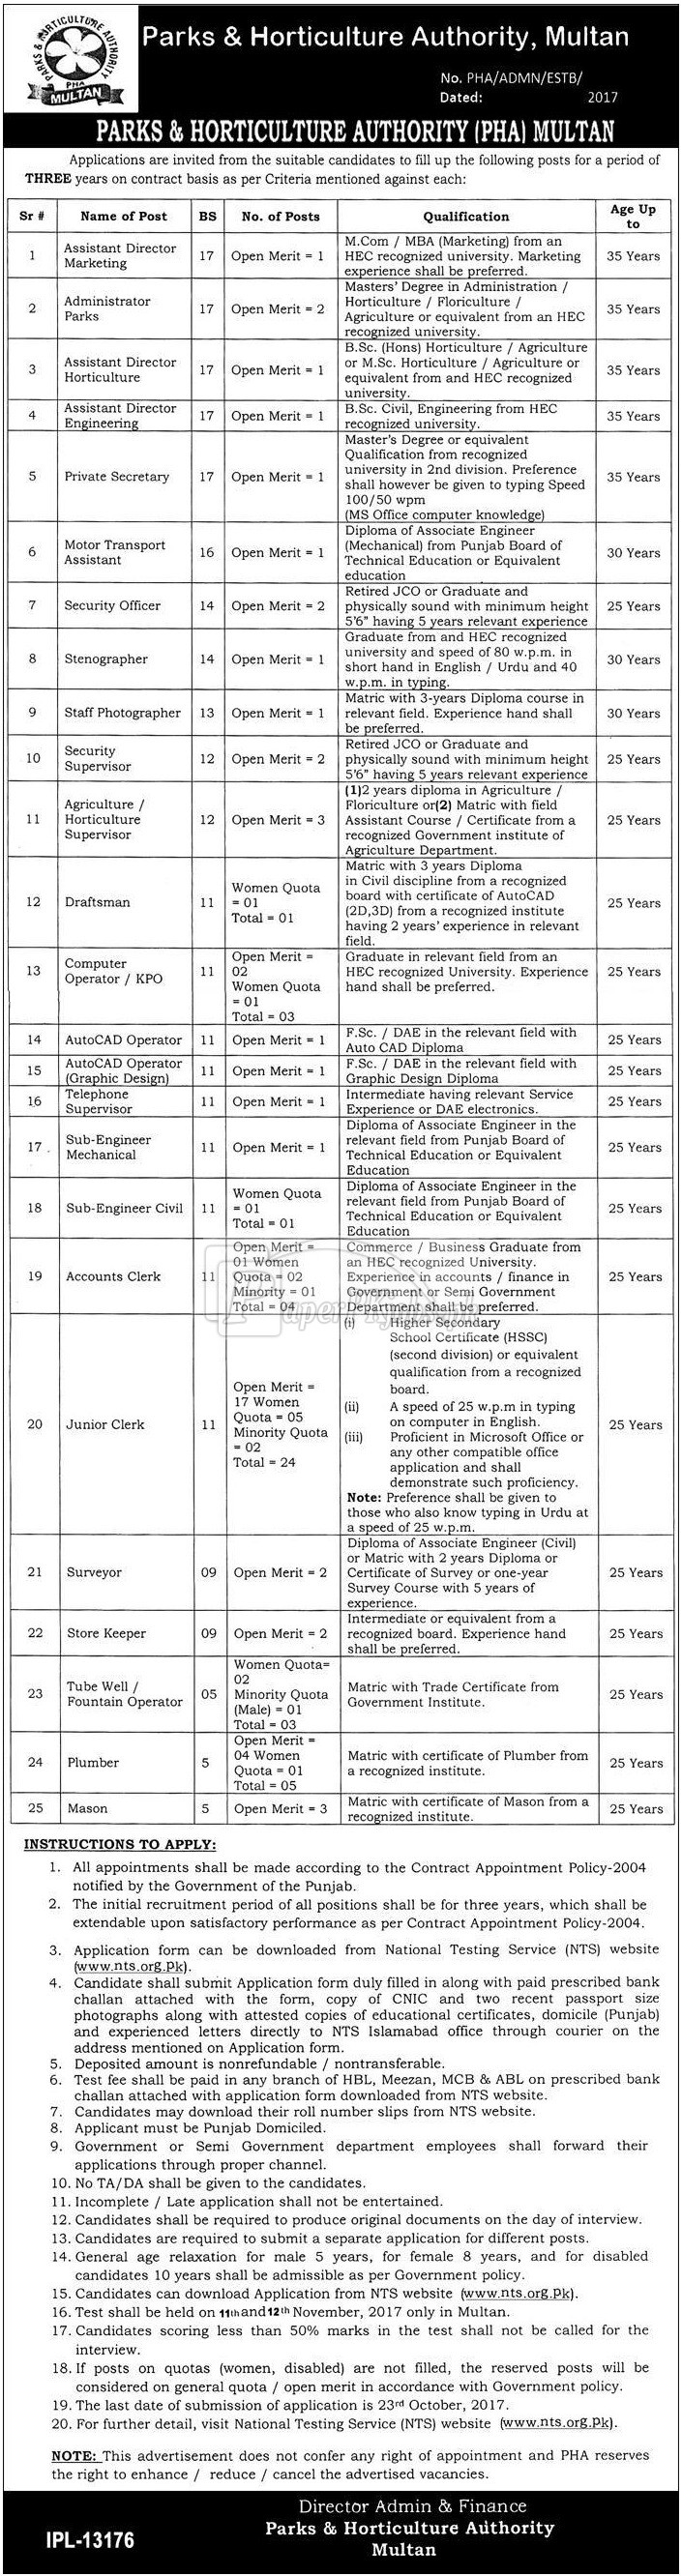 Parks & Horticulture Authority PHA Multan NTS Jobs 2017